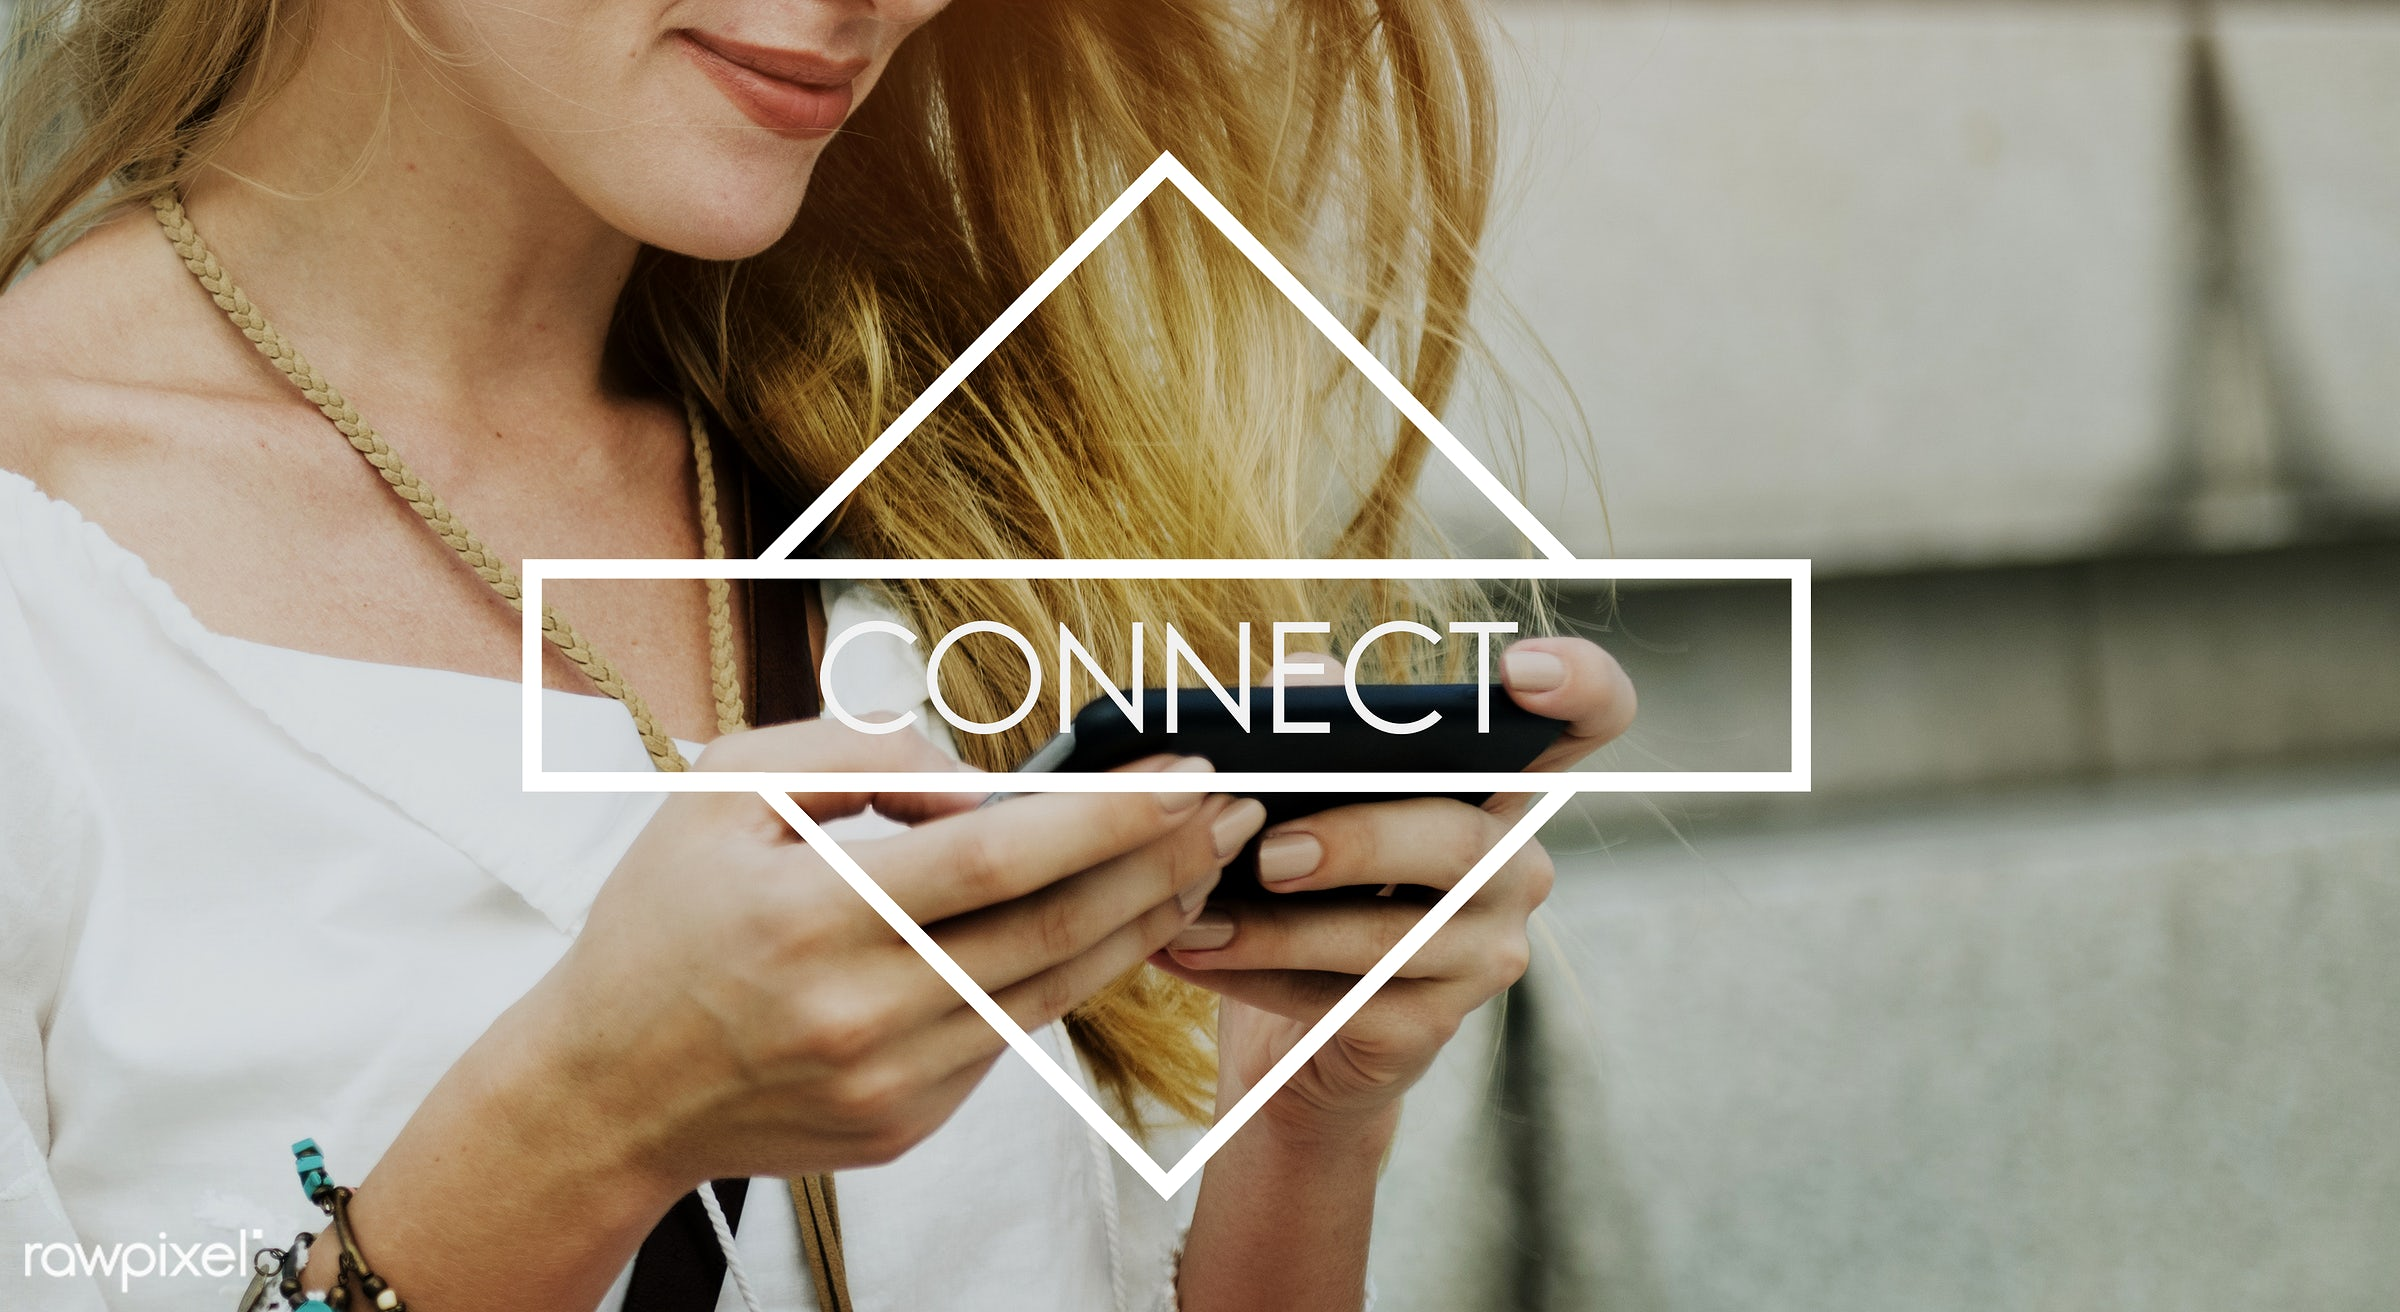 contact, woman, phone, access, browsing, chat, communication, connect, connected, connection, interconnection, join, leisure...